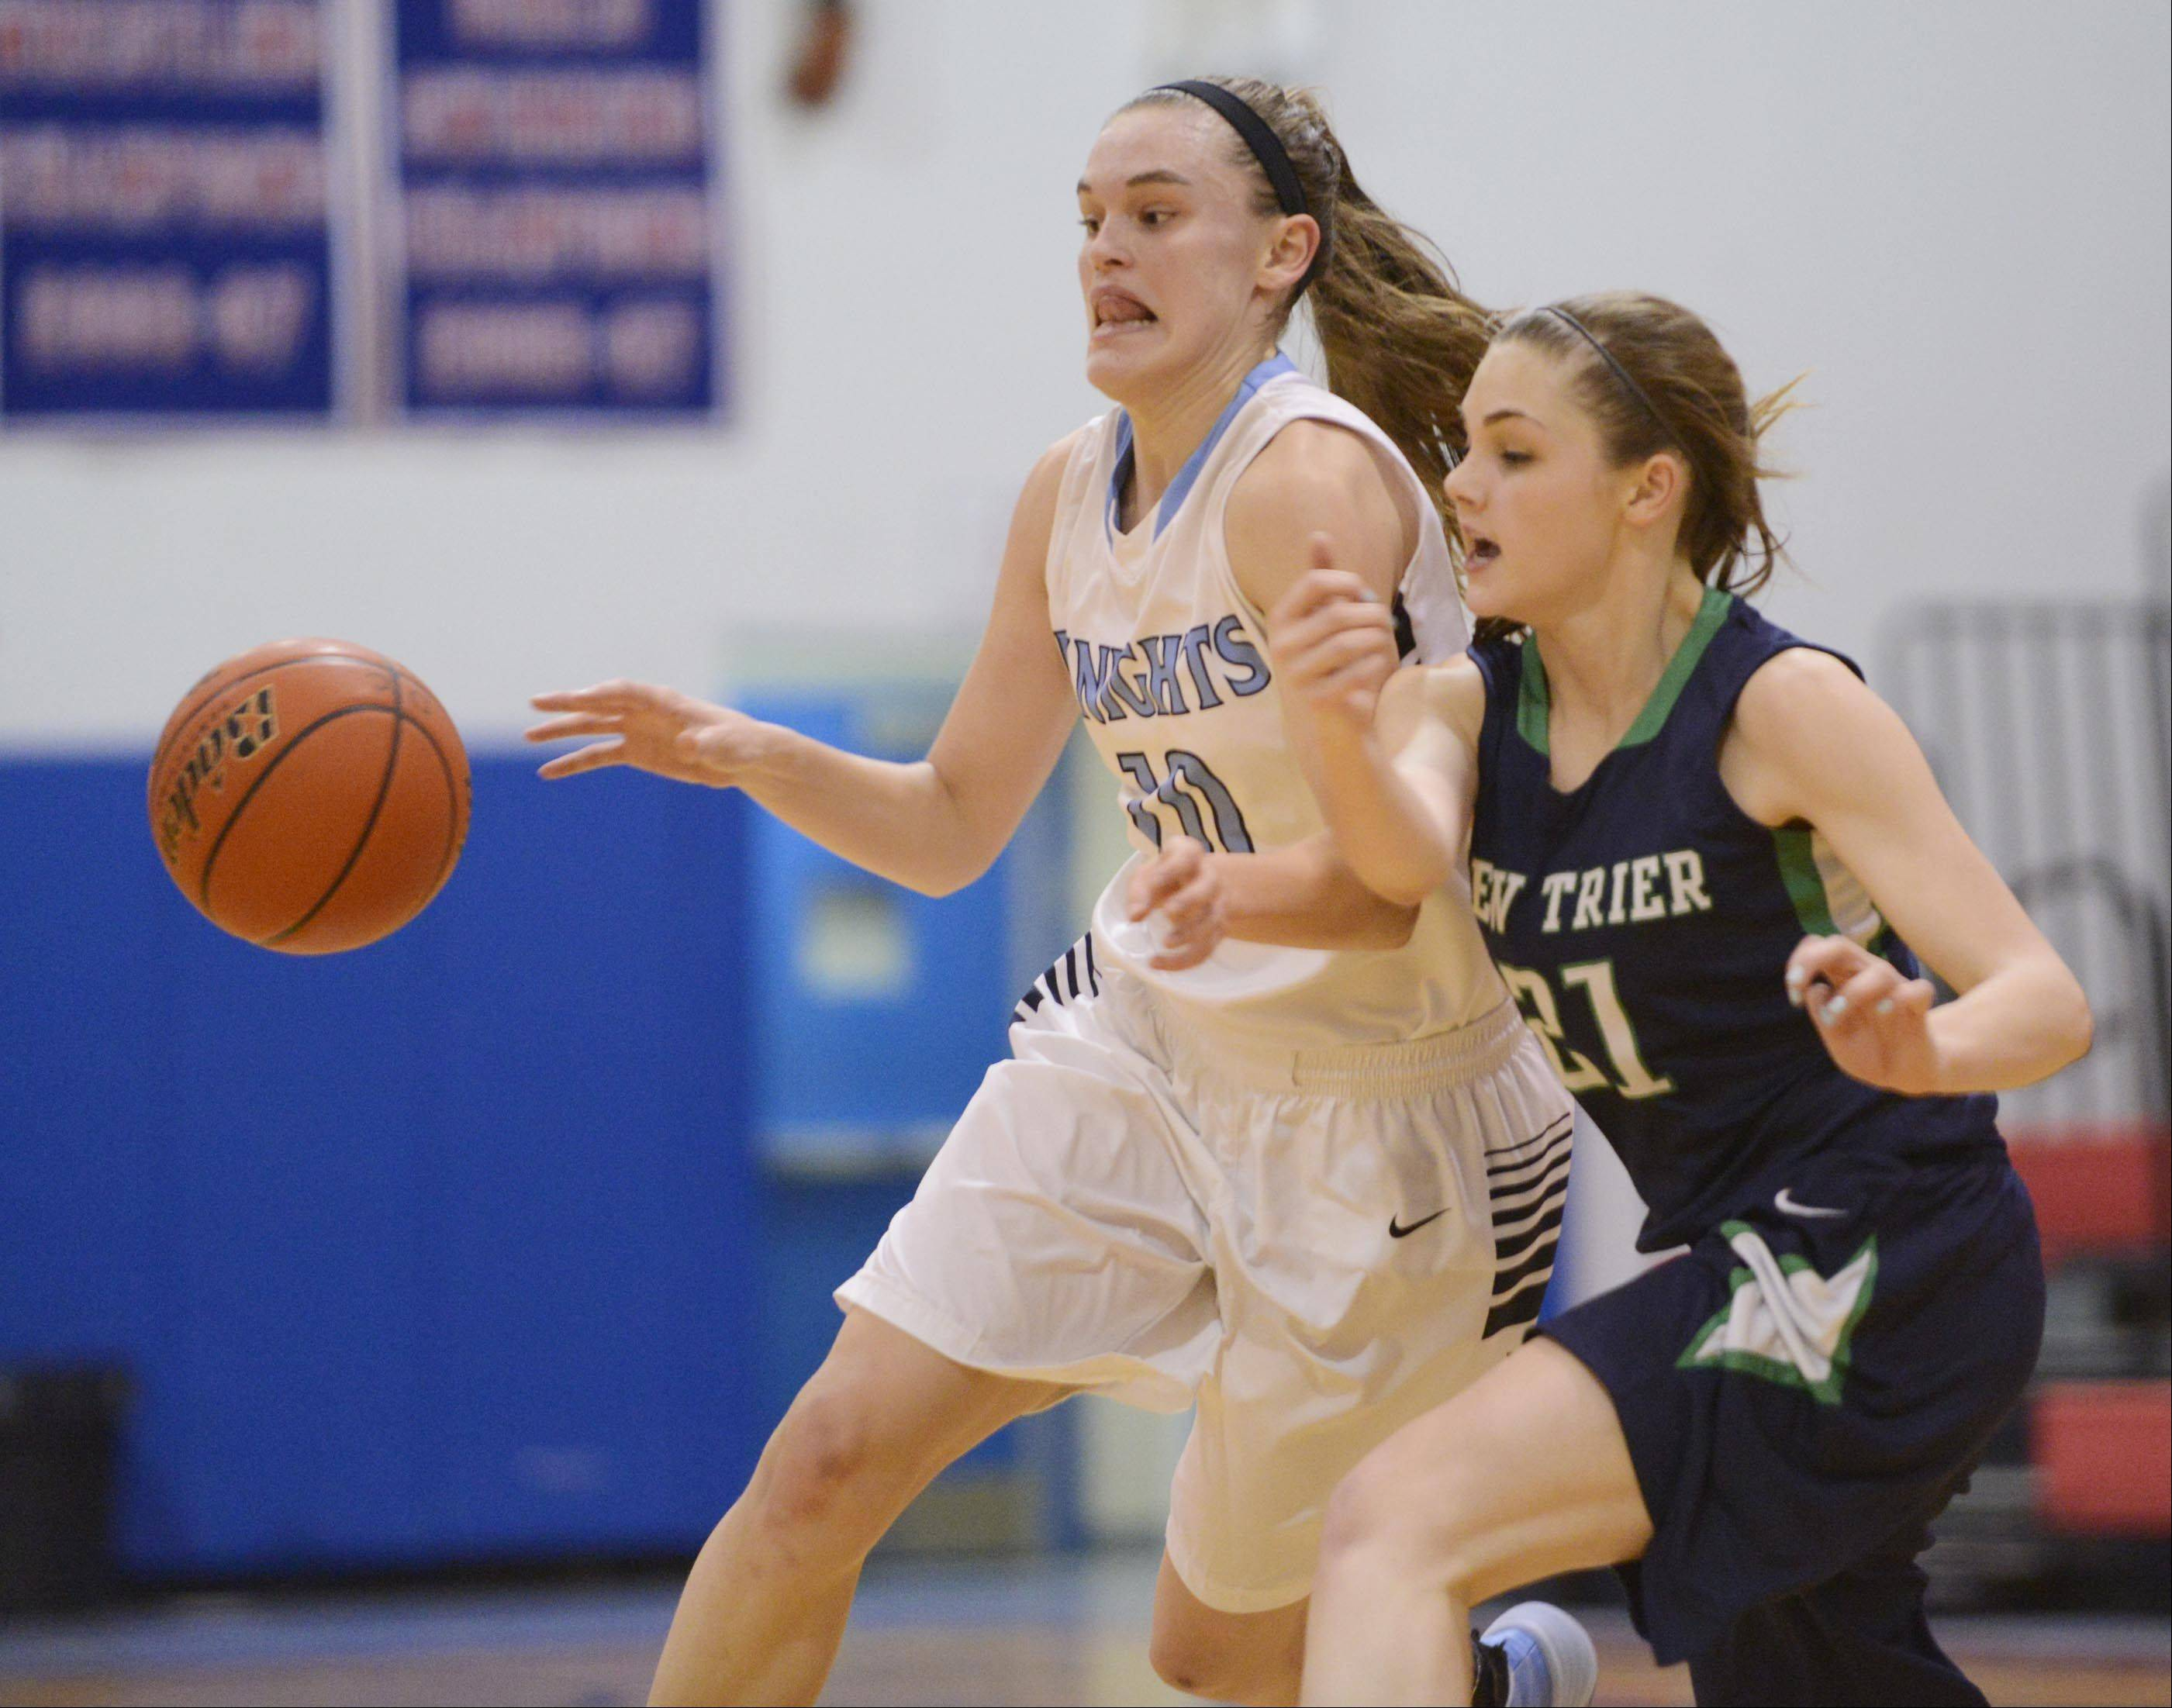 New Trier�s Isabella Bosco knocks the ball from Prospect�s Taylor Will Monday in the championship game of the 31st Annual Charger Classic at Dundee-Crown on Monday.